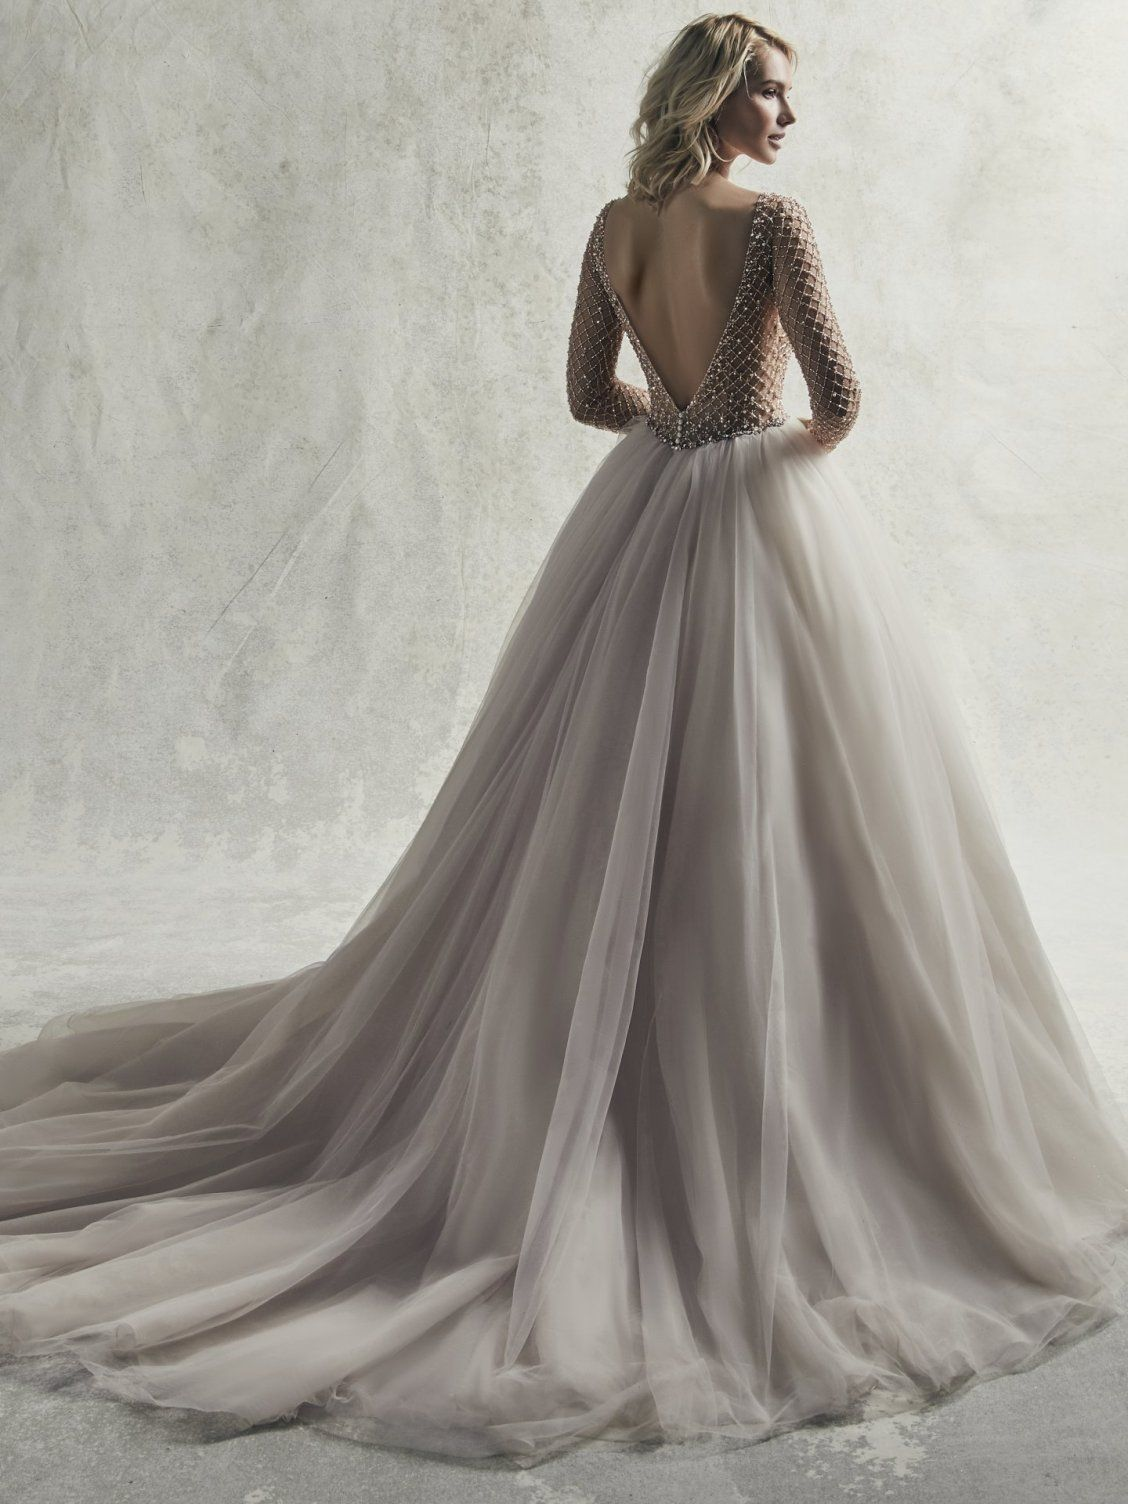 a2b0b3120a79 Sottero and Midgley - FITZGERALD, Regal and romantic, this sleeved princess wedding  dress features a sheer bodice of geometric beading and Swarovski ...